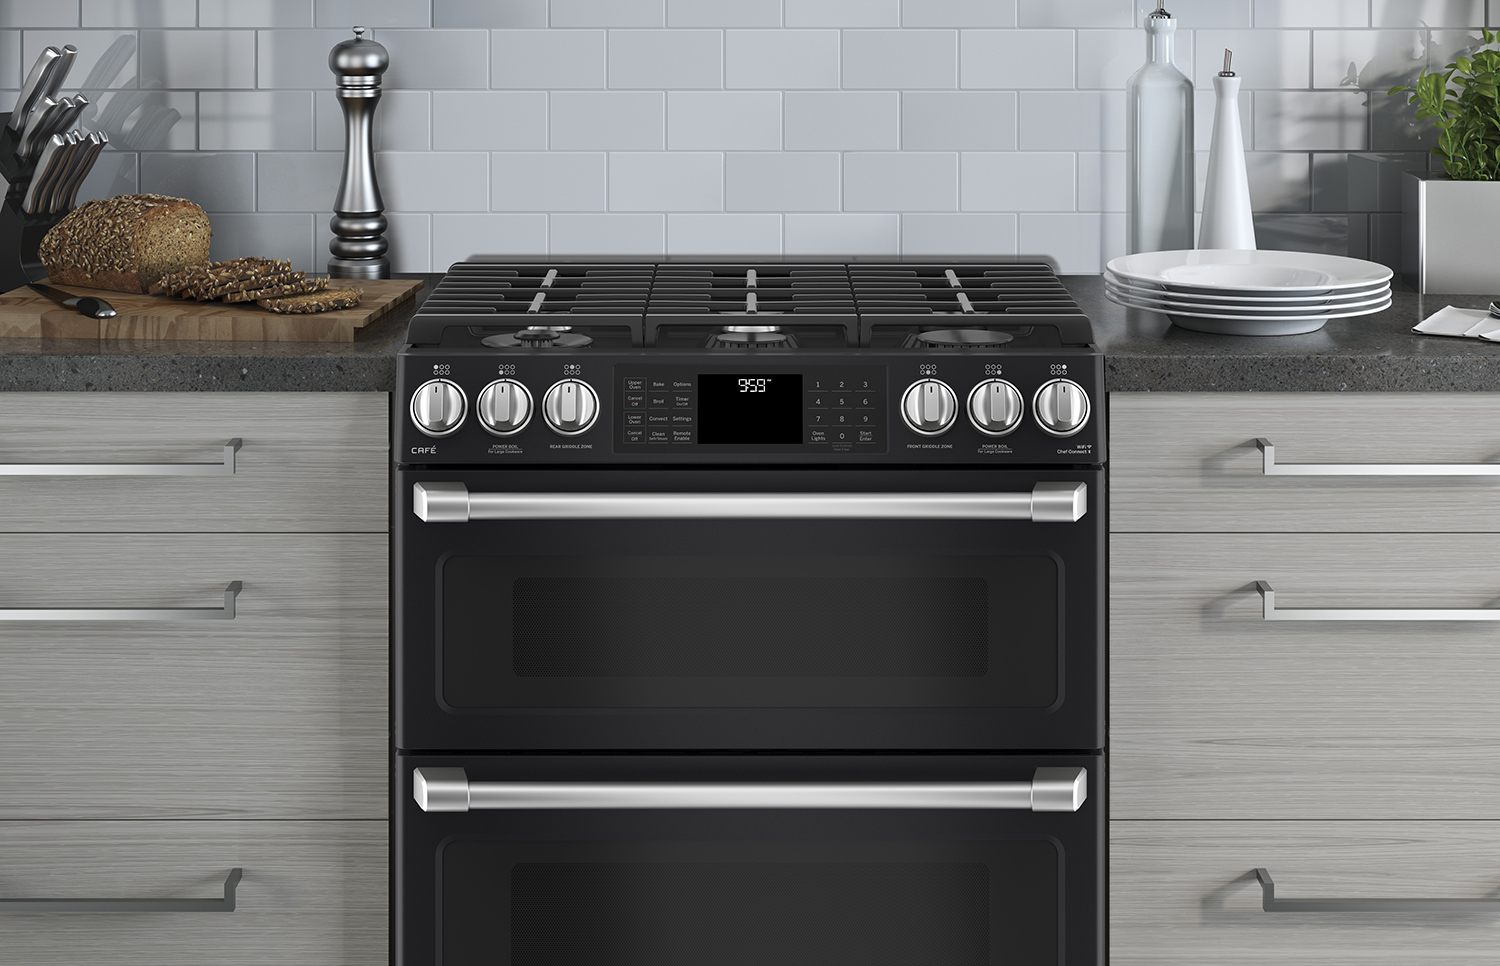 Photo of Top 5 Kitchen Appliances Busy People Must Add to Their Existing Appliance Range